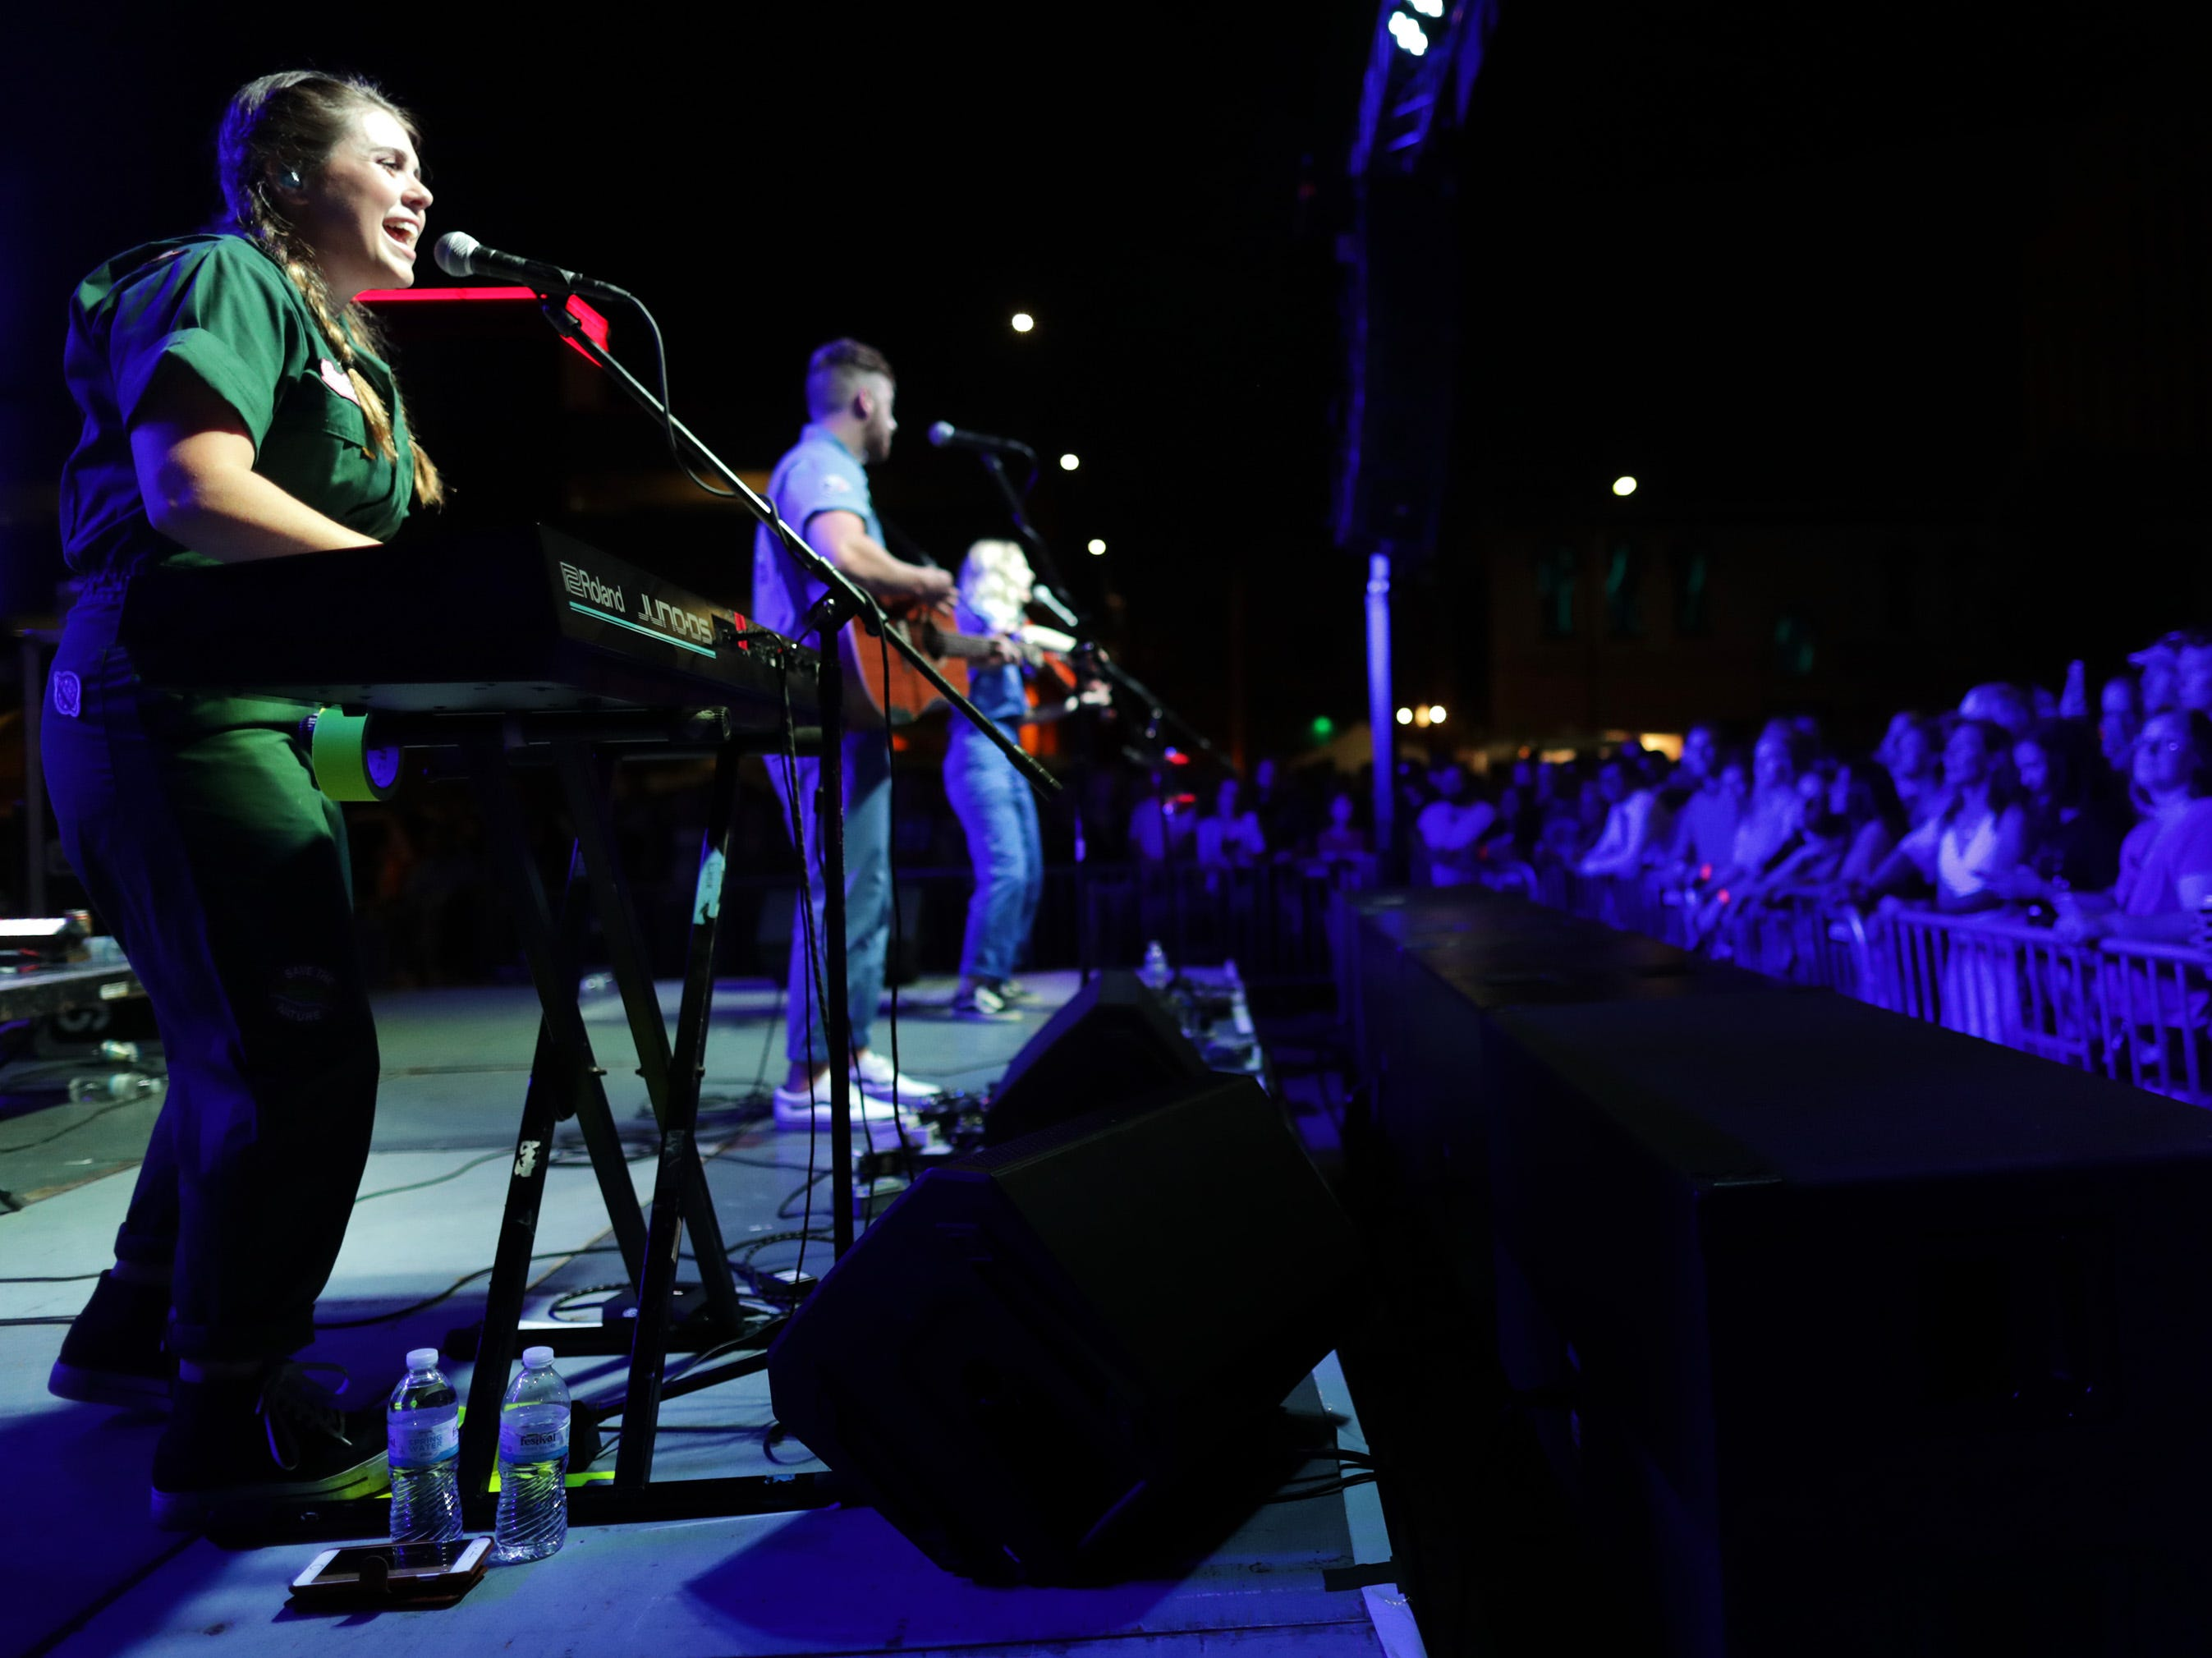 The National Parks perform at Houdini Plaza during the Mile of Music festival Friday, August 3, 2018, in Appleton, Wis. 